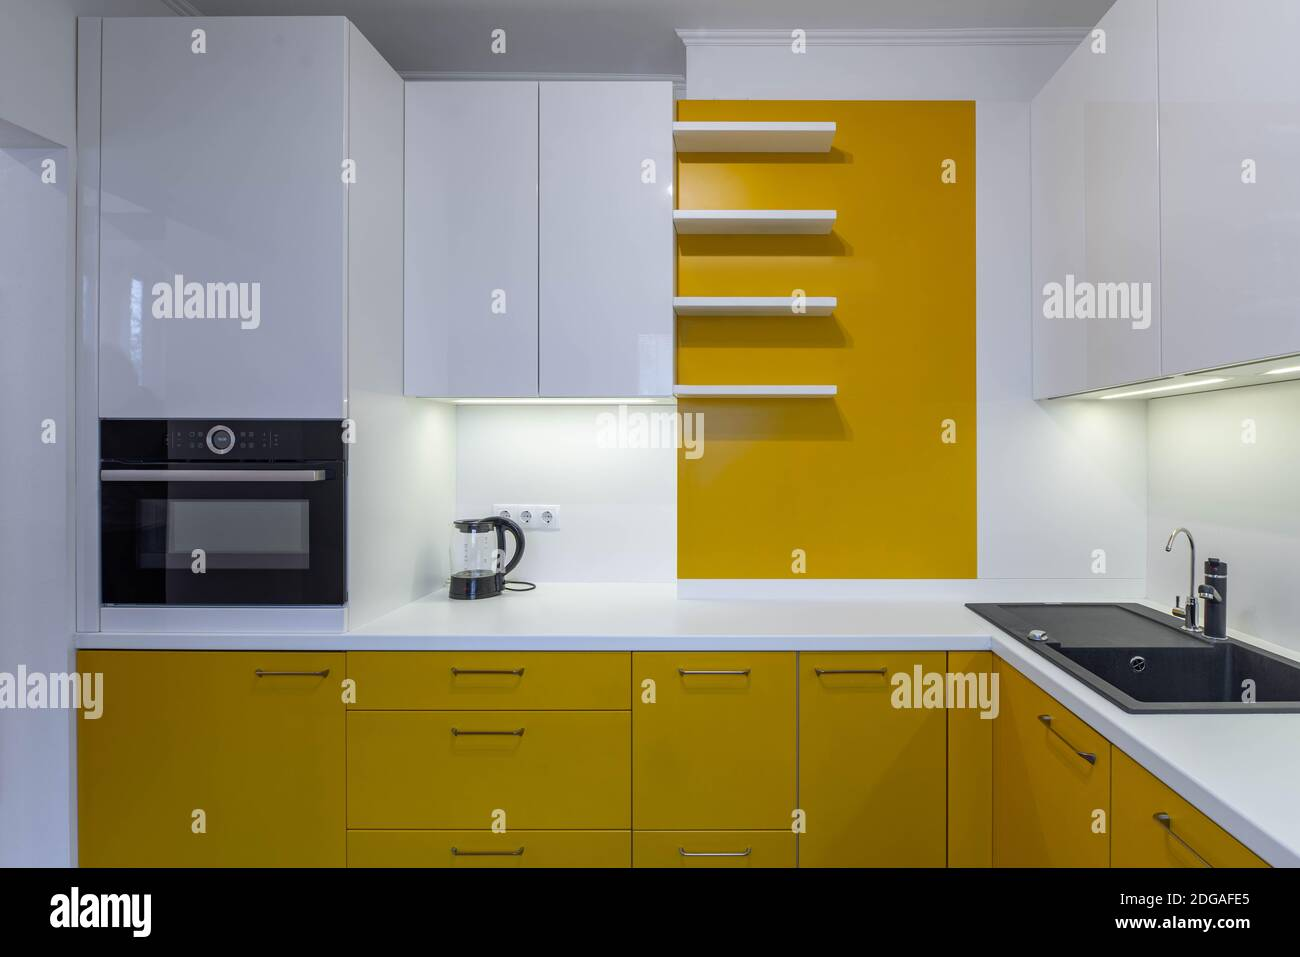 Modern Interior Of Kitchen In Luxury Apartment Yellow Set With White Counter Black Sink Cabinets And Drawers Kettle Oven Stock Photo Alamy